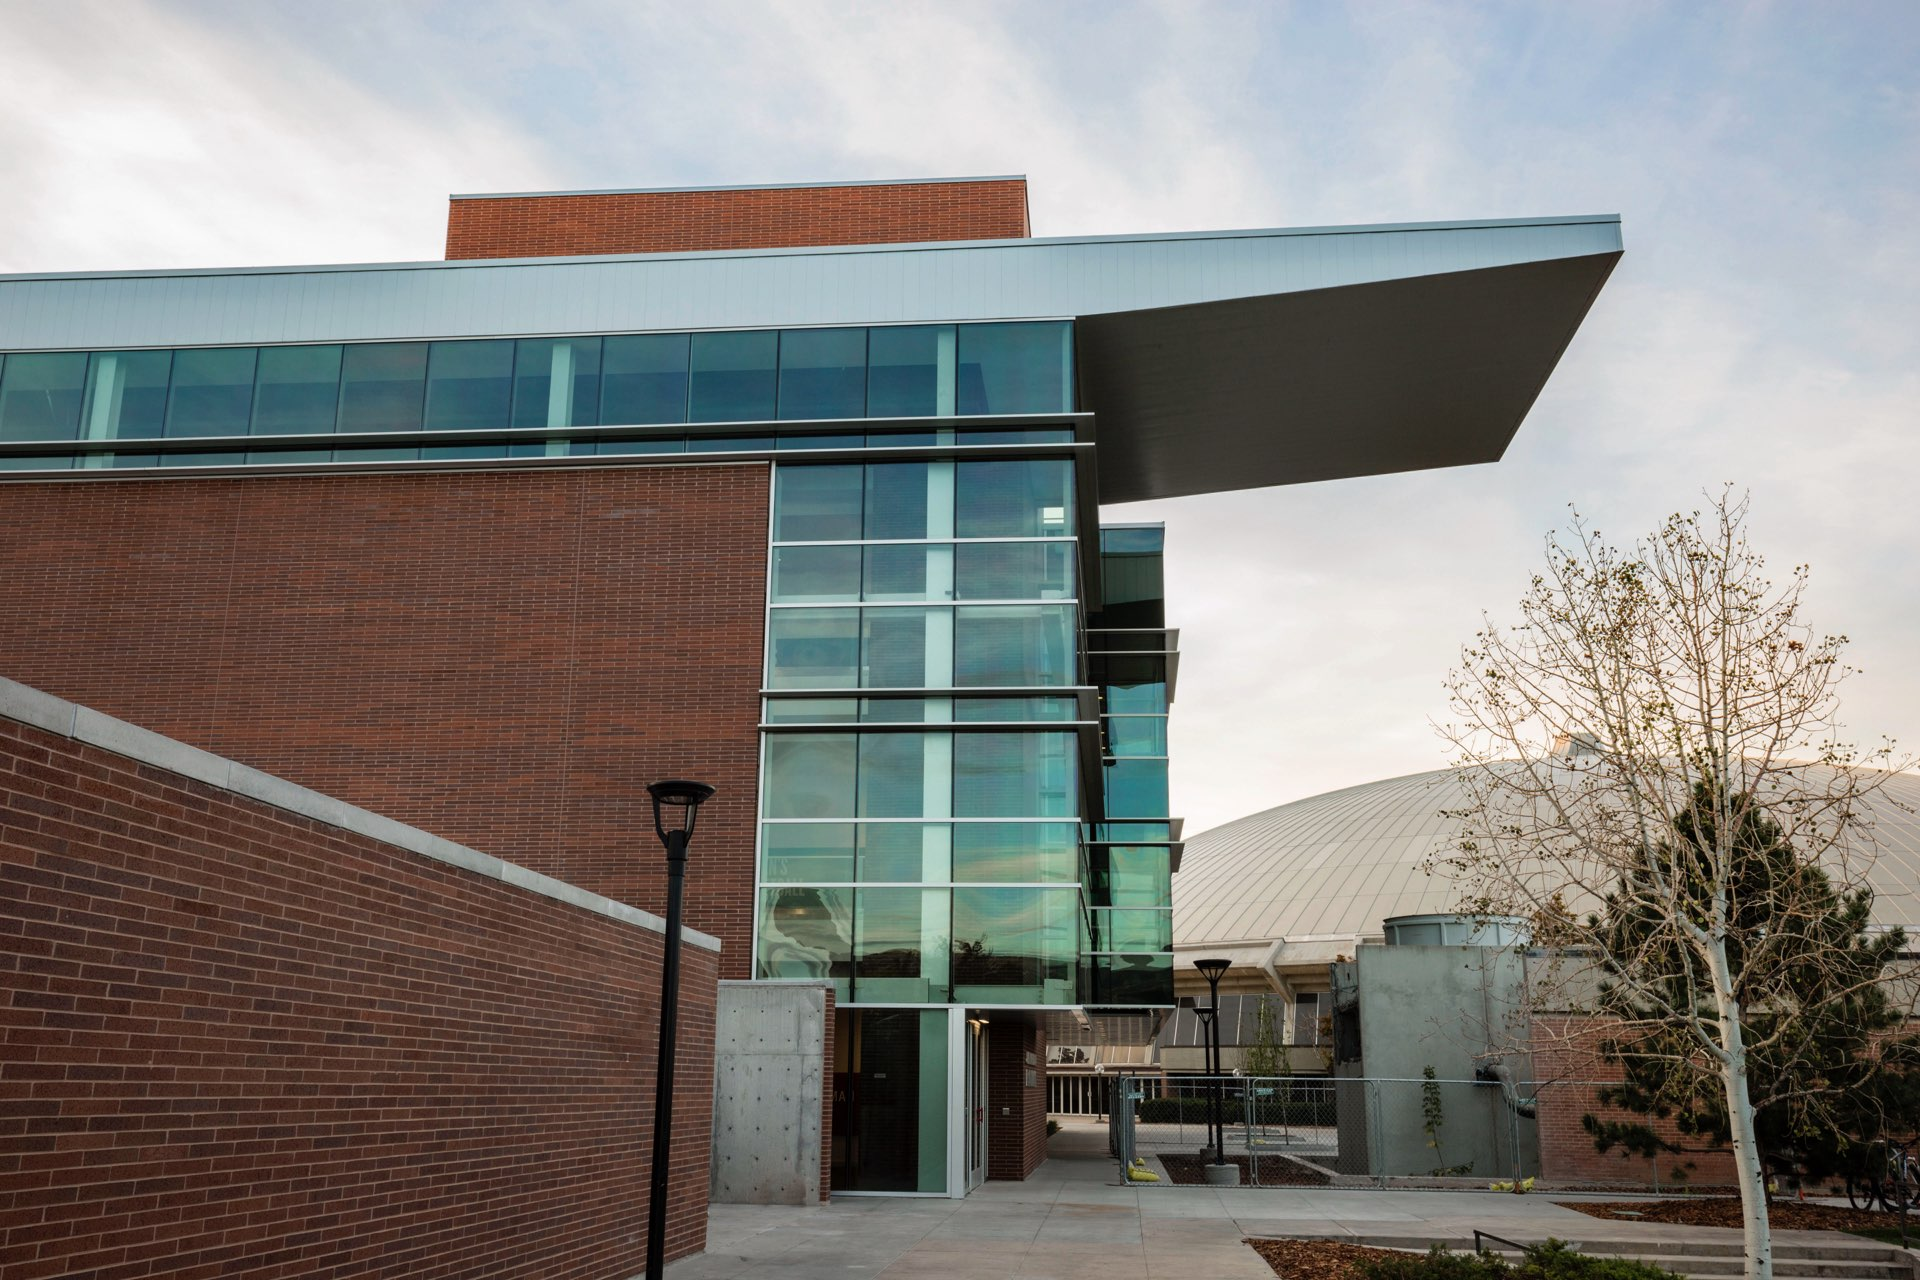 Entrance to the University of Utah Basketball Facility, architectural design by Elliott Workgroup